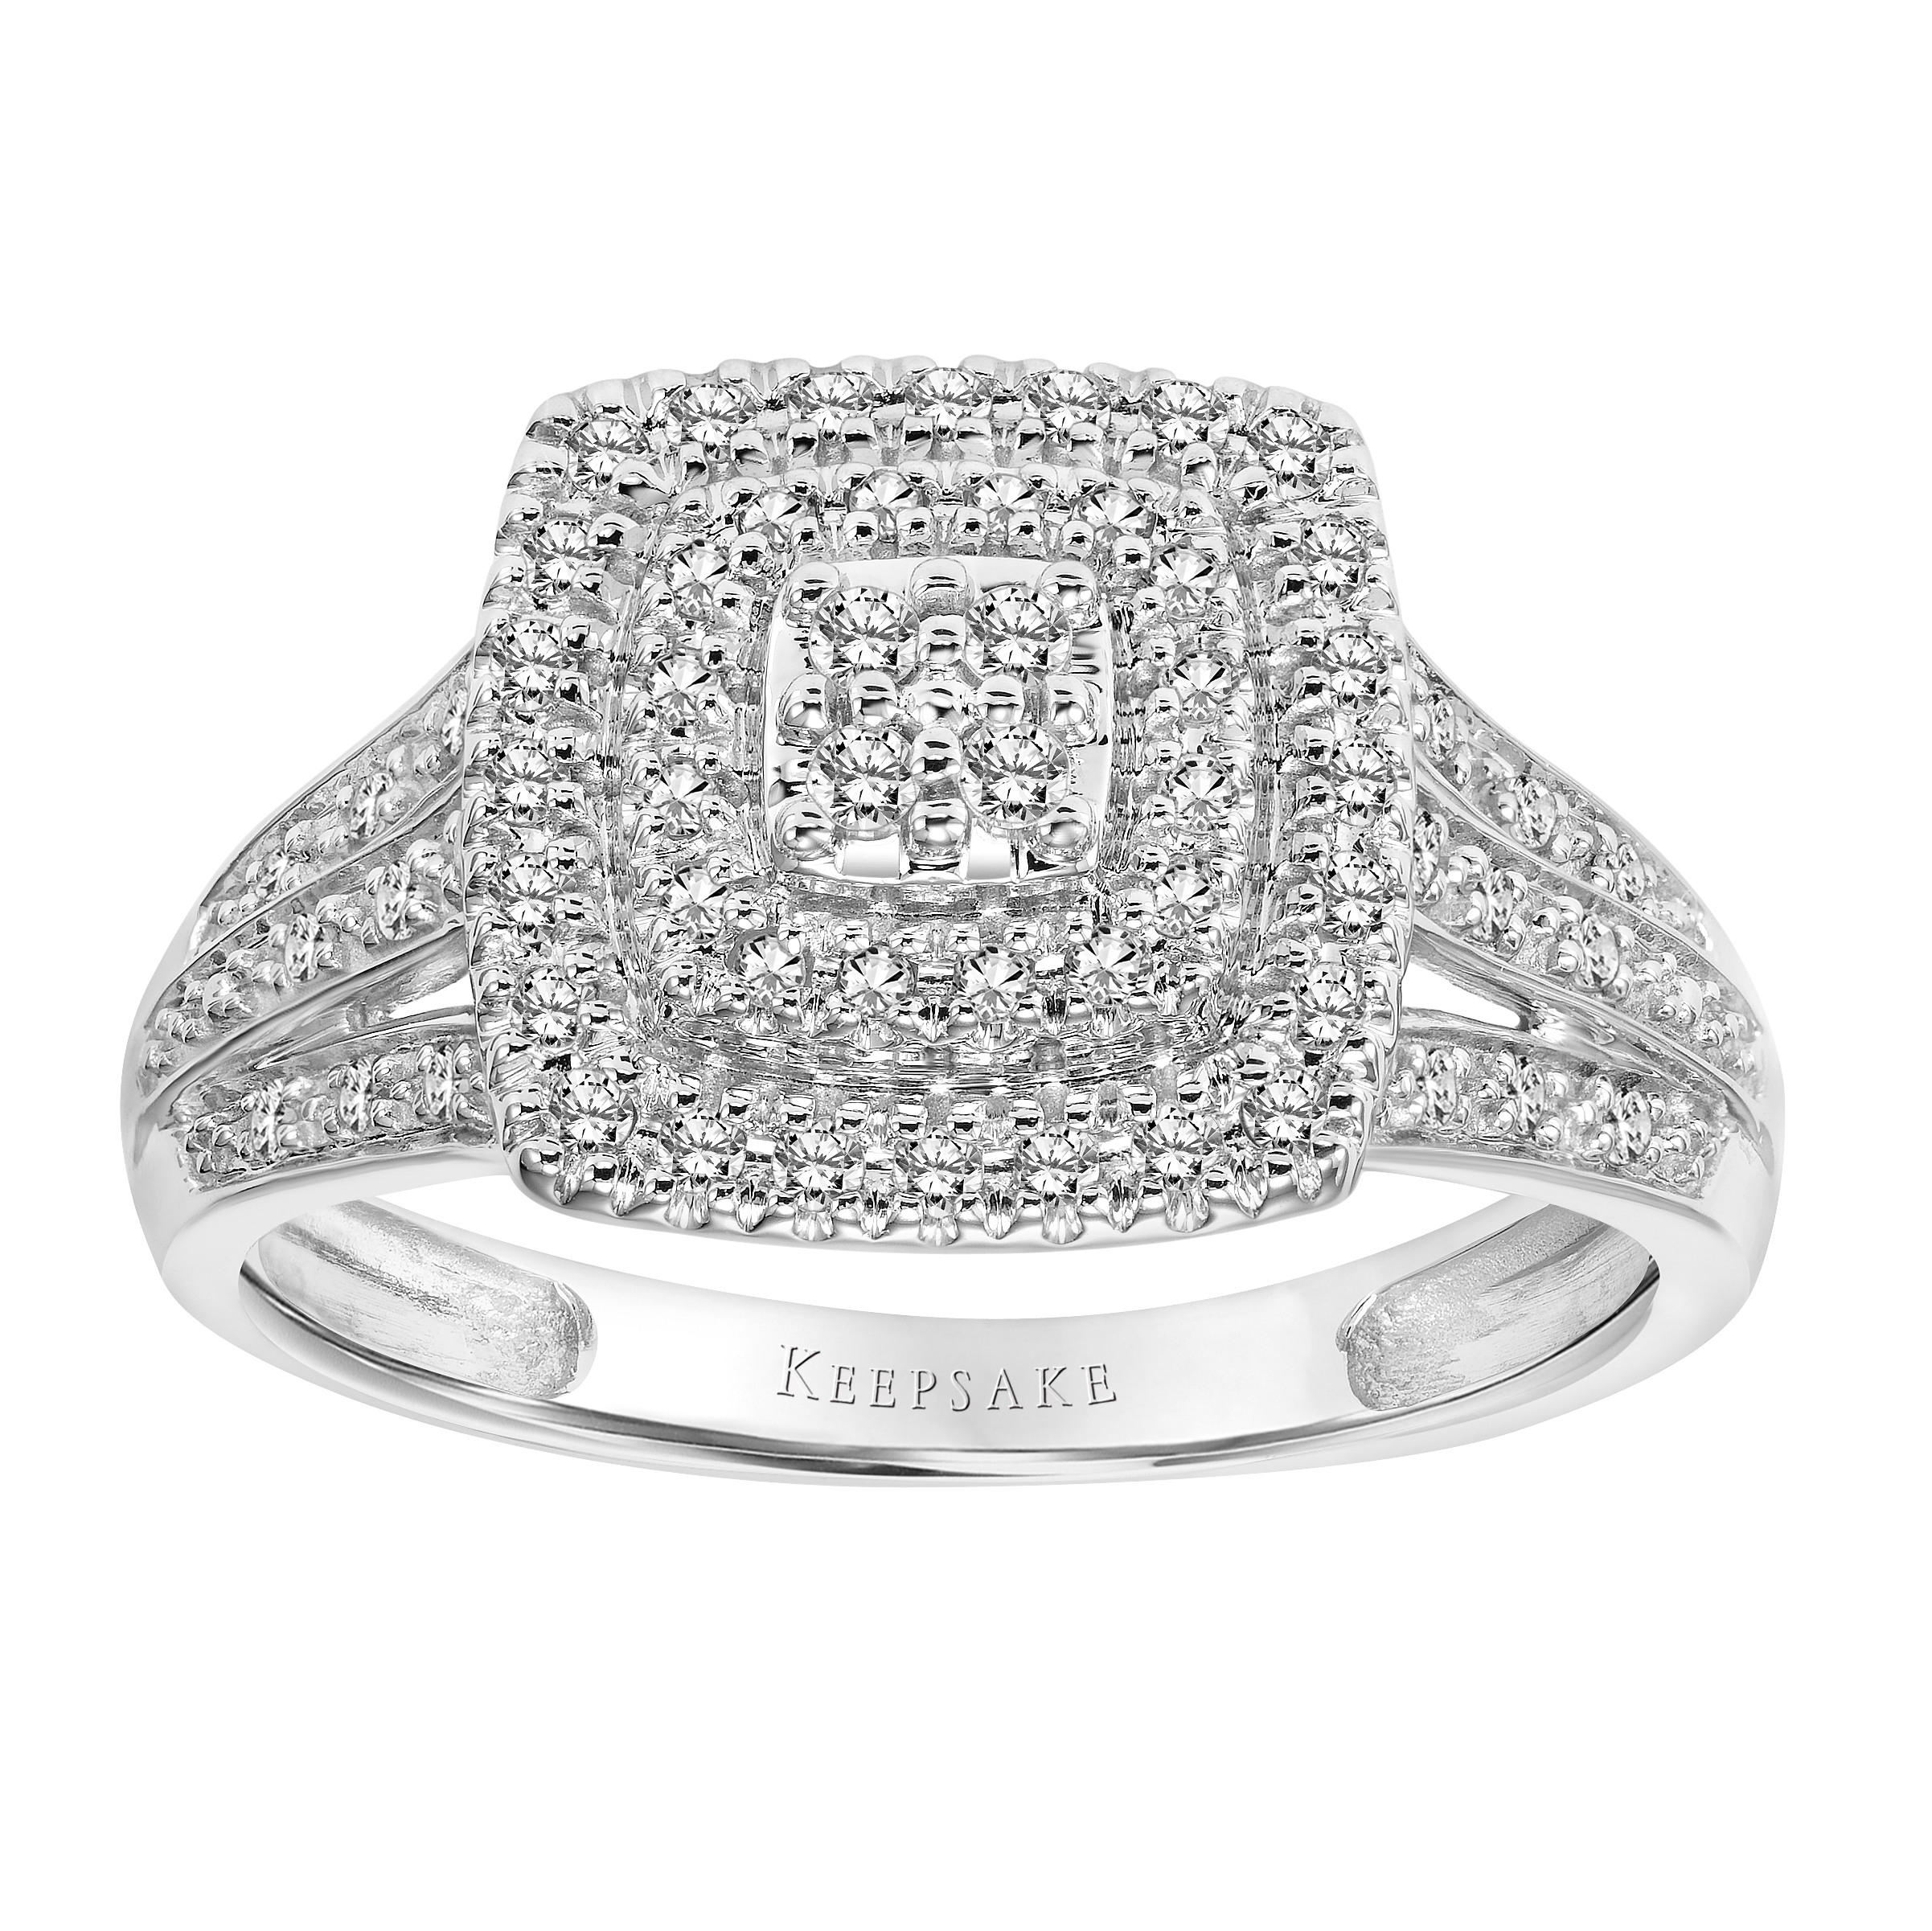 Keepsake Limited Edition 2017 1/3 Carat T.W. Certified Diamond 10kt White Gold Ring